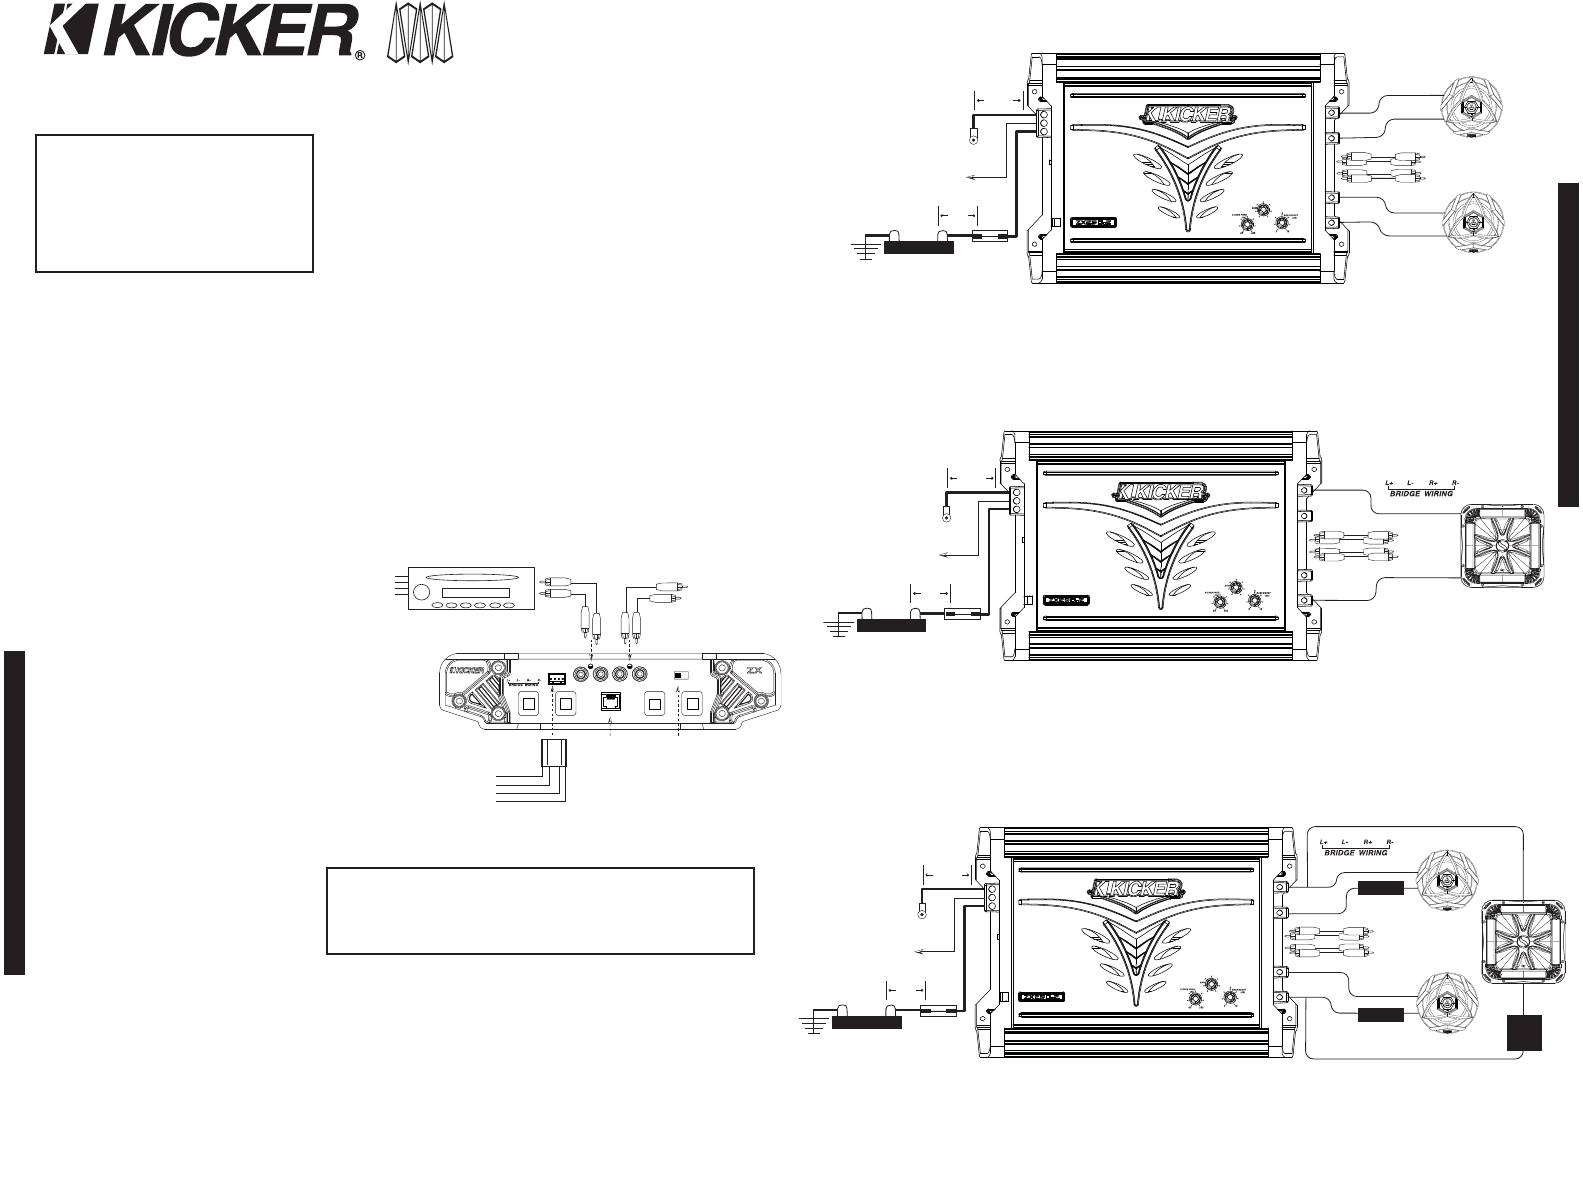 Lovely Kicker Wiring Diagram Pictures Inspiration - Electrical ...